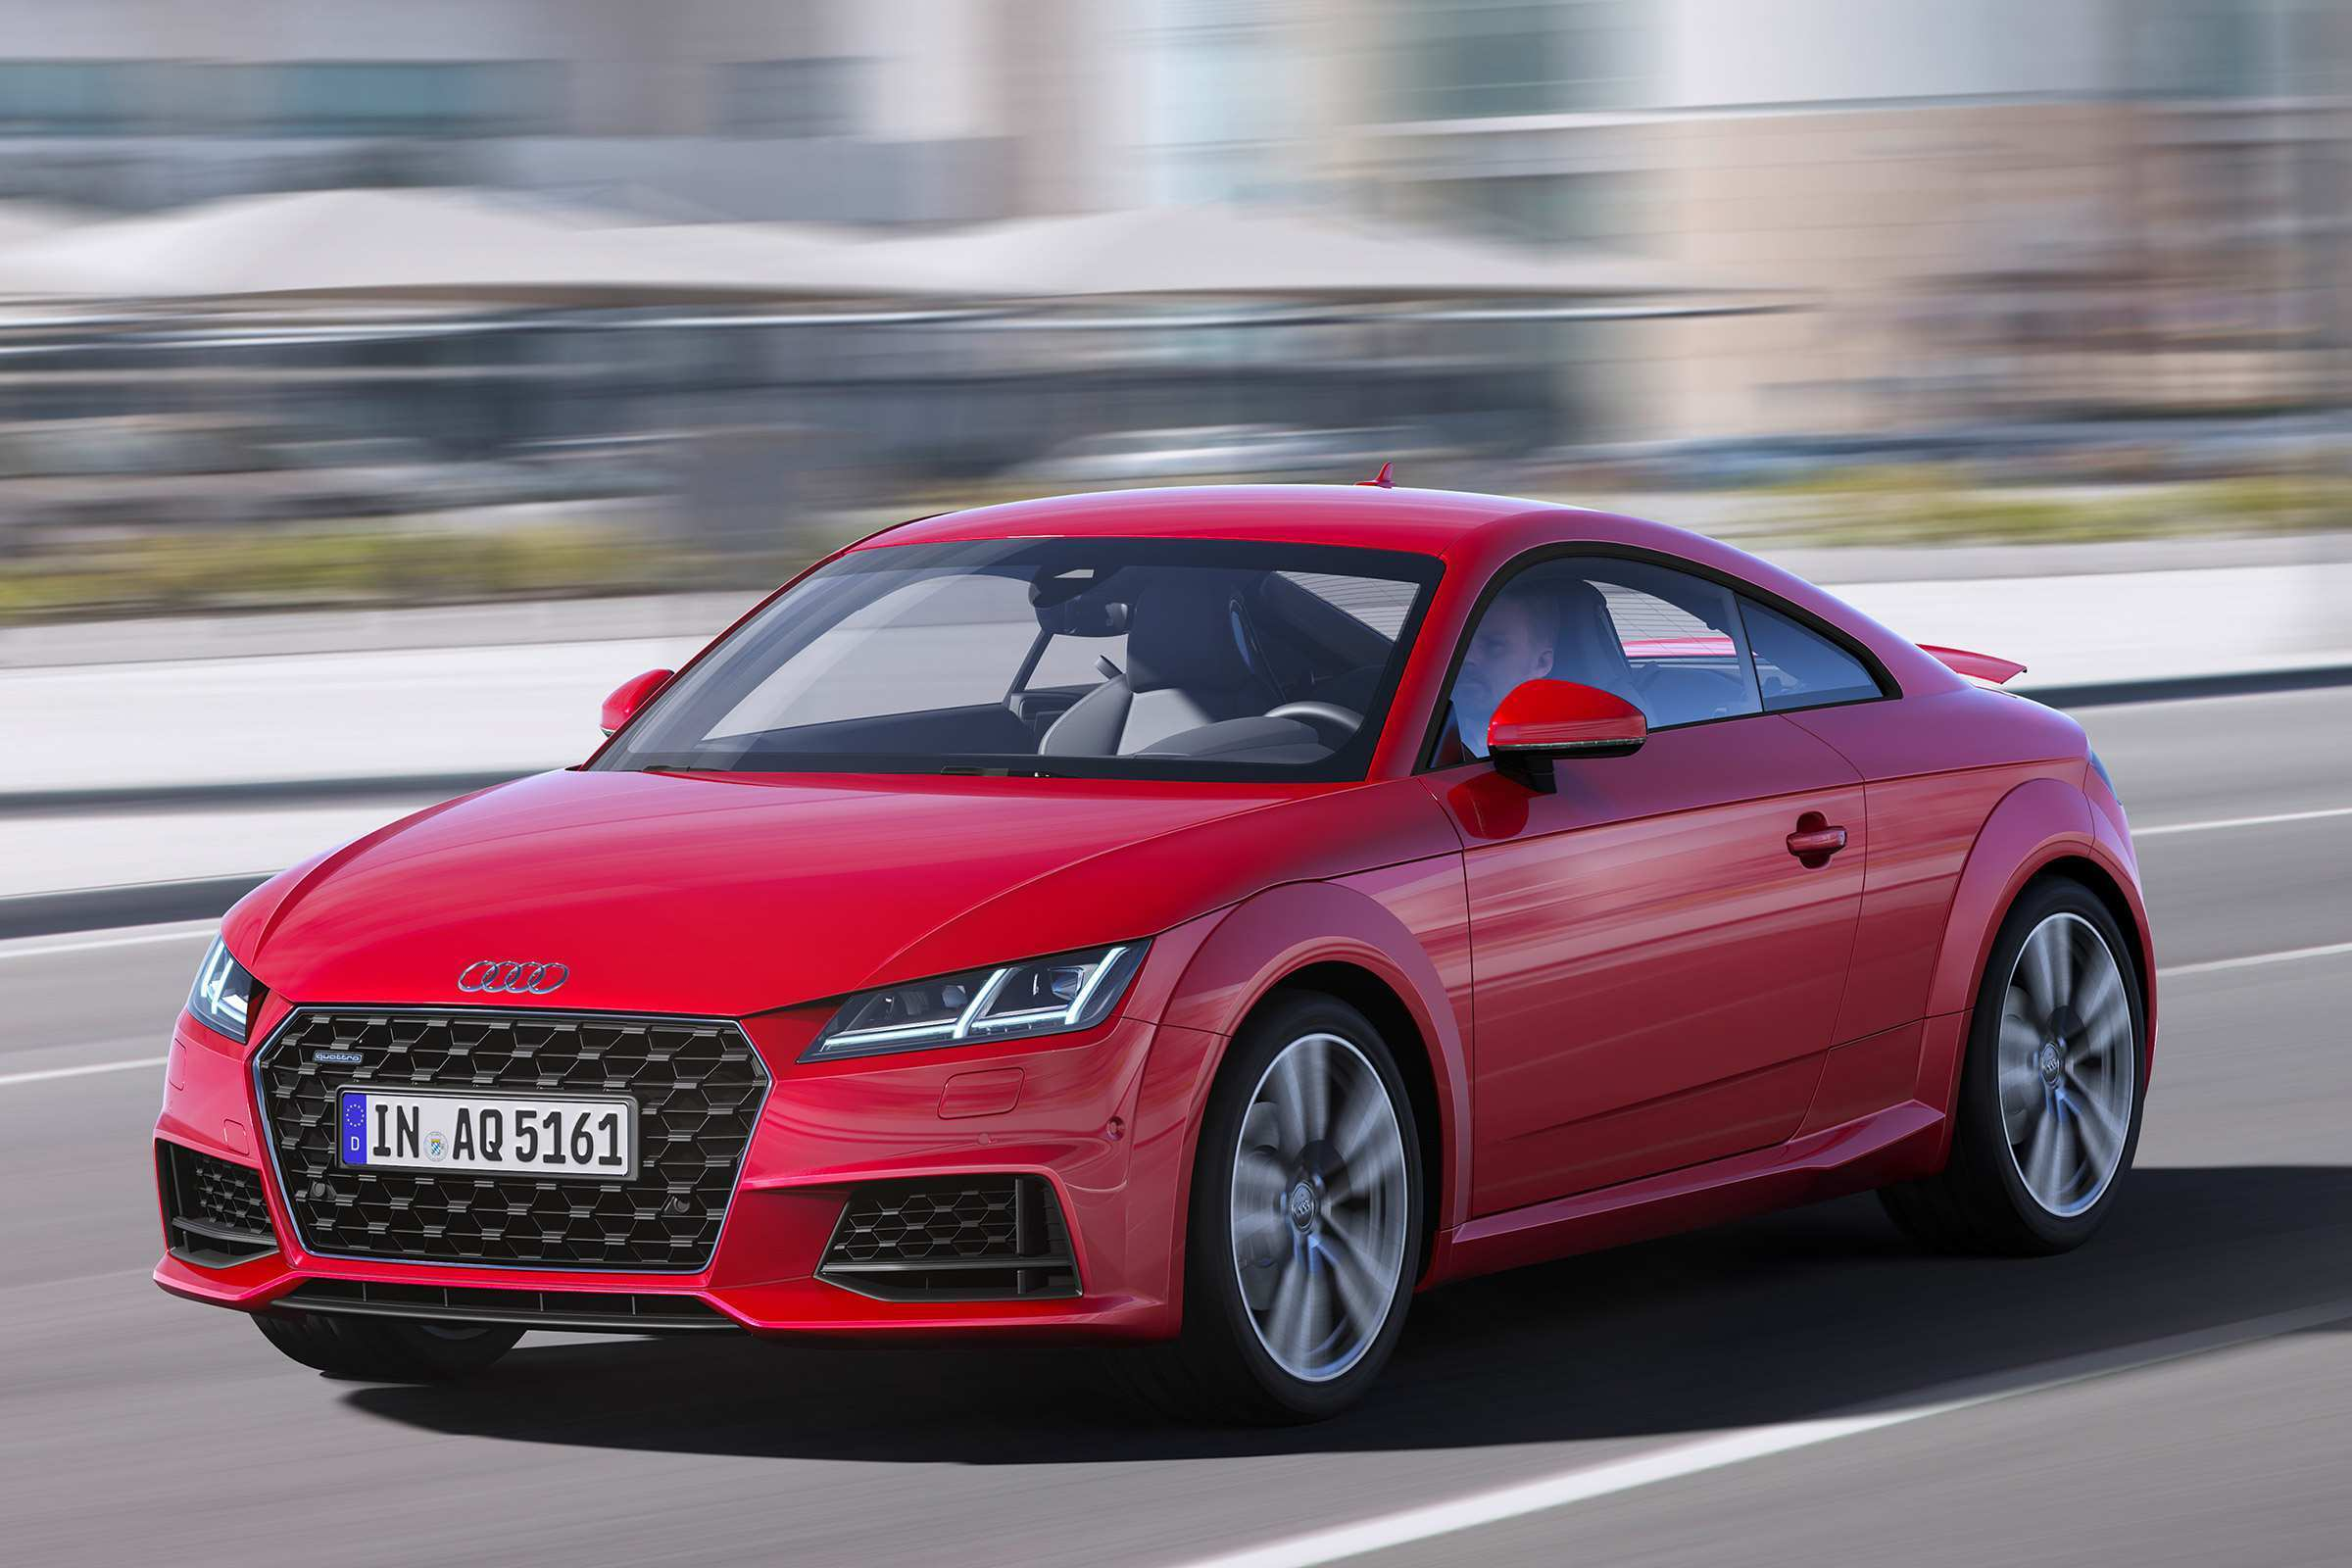 97 Concept of 2019 Audi Tt Release Date Exterior and Interior for 2019 Audi Tt Release Date